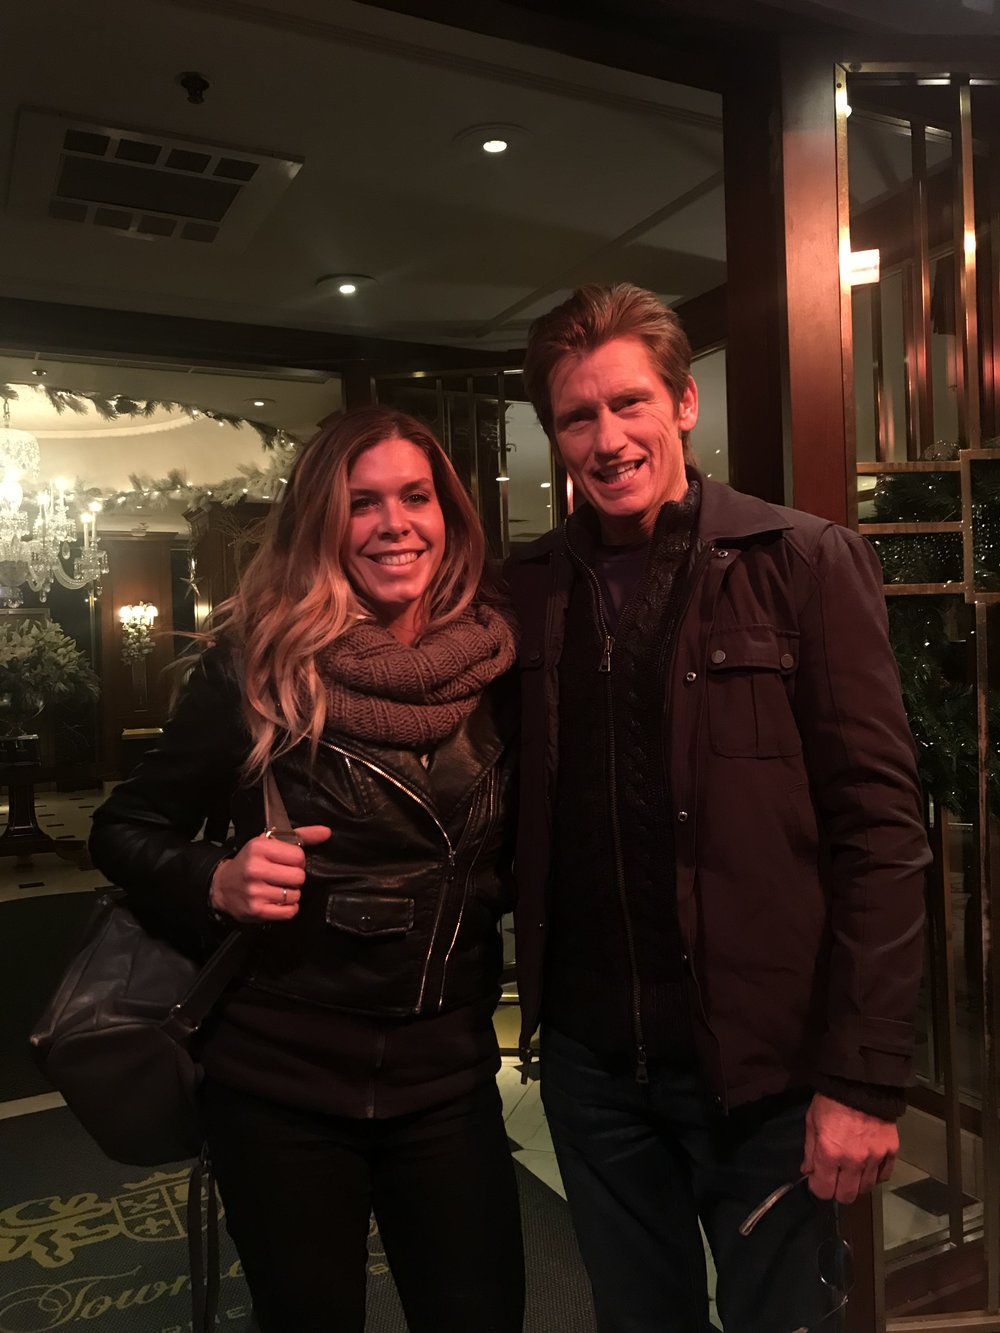 Denis Leary and I